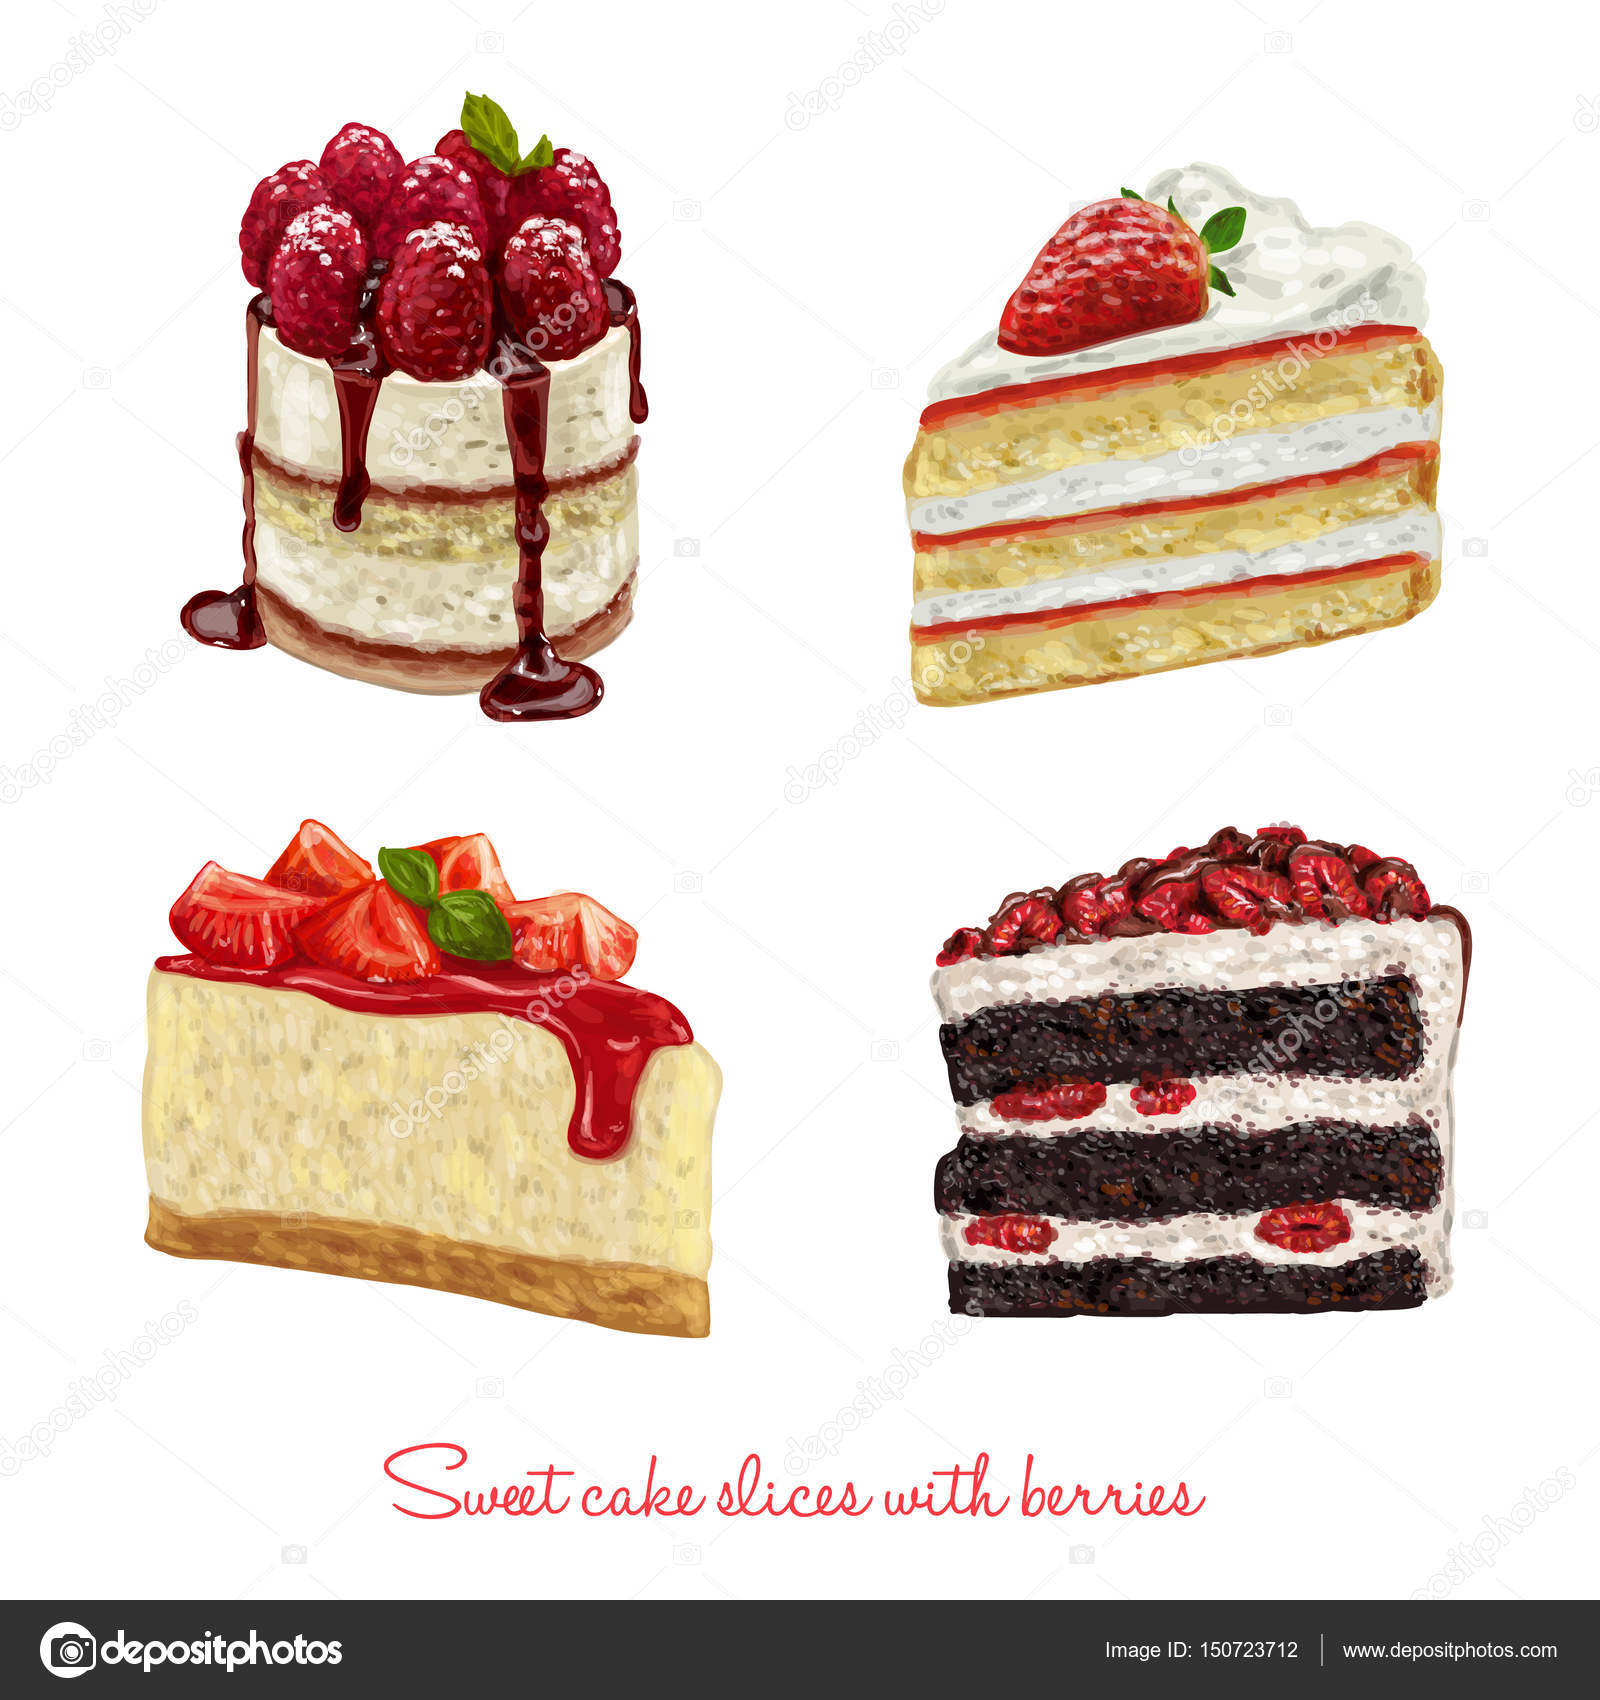 Images of cake slices